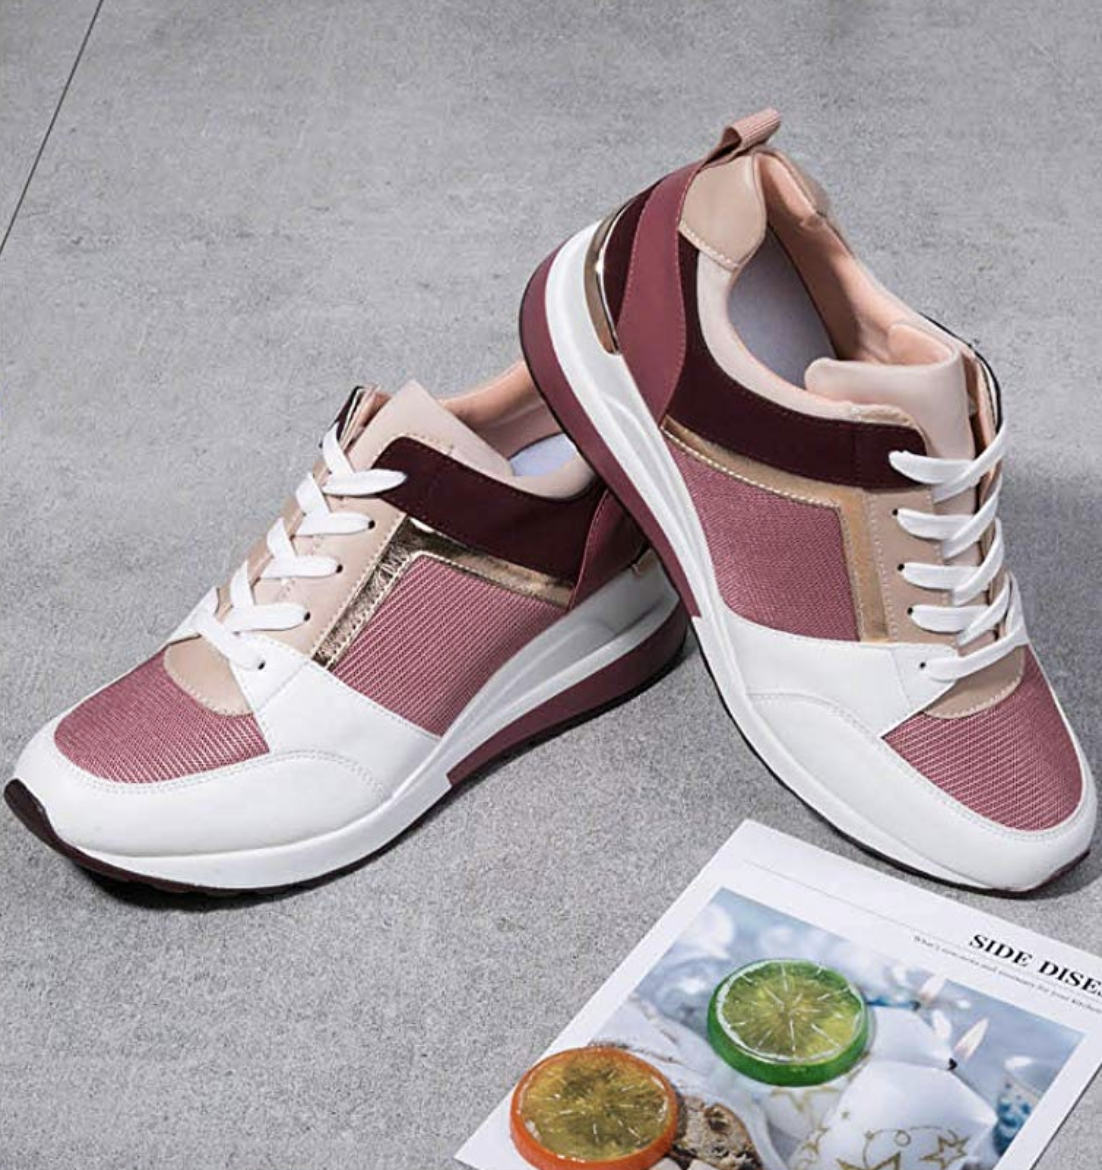 The sneaker with a wedge in the sole and patches of white, light pink, mauve, and burgundy throughout